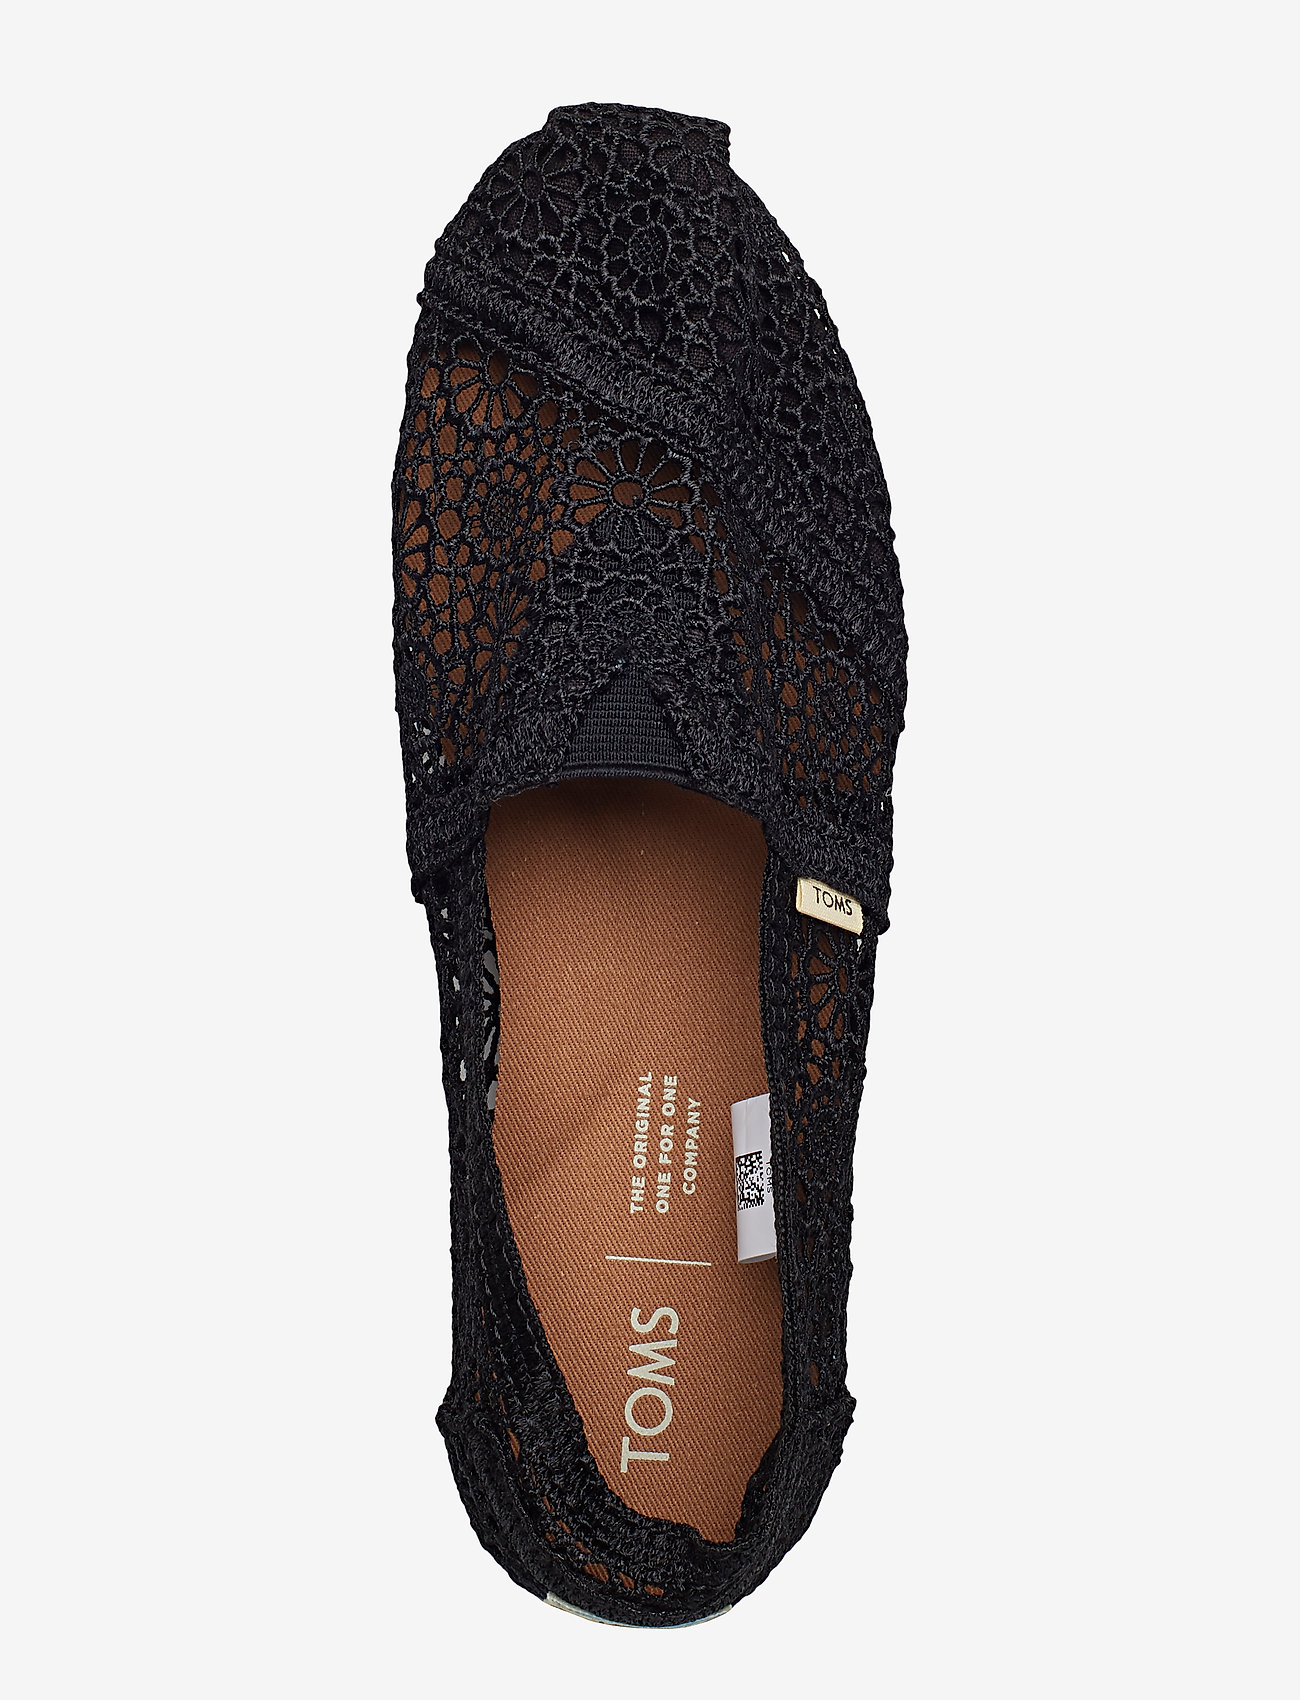 Black Moroccan Crochet (Black) - TOMS